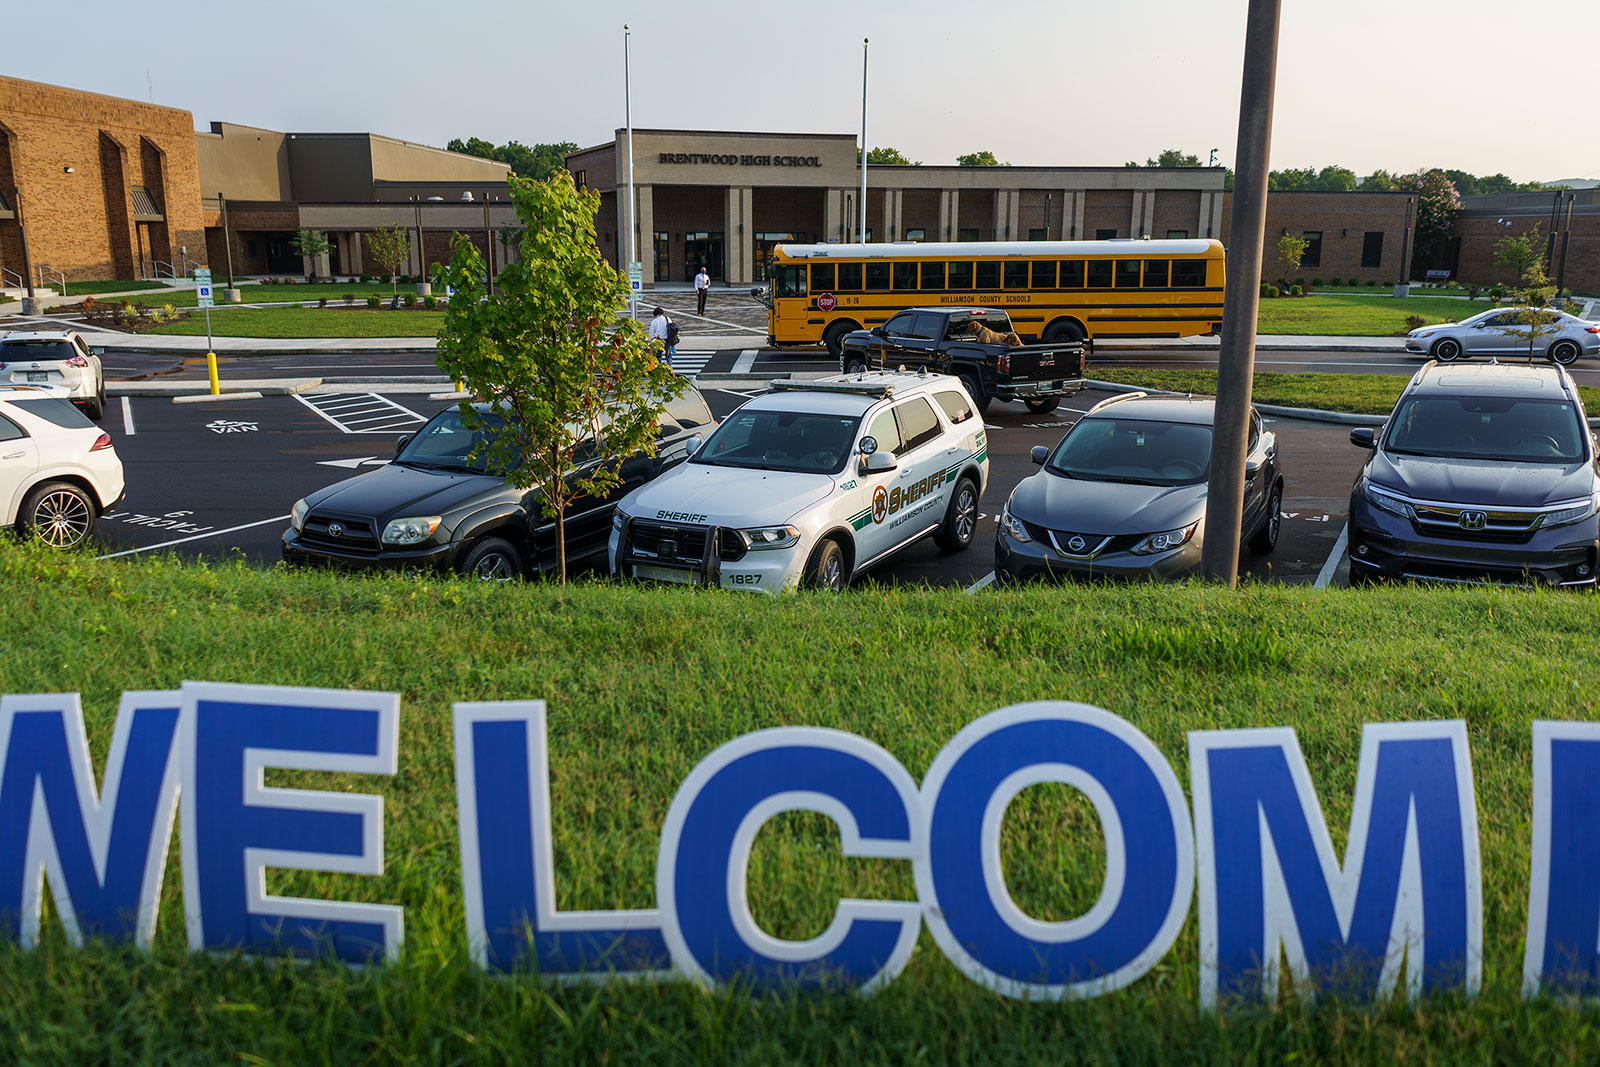 Students make their way into Brentwood High School outside of Nashville, Tennessee. Dr. Anthony Fauci said on Tuesday that he thinks vaccines for teachers should be mandated.